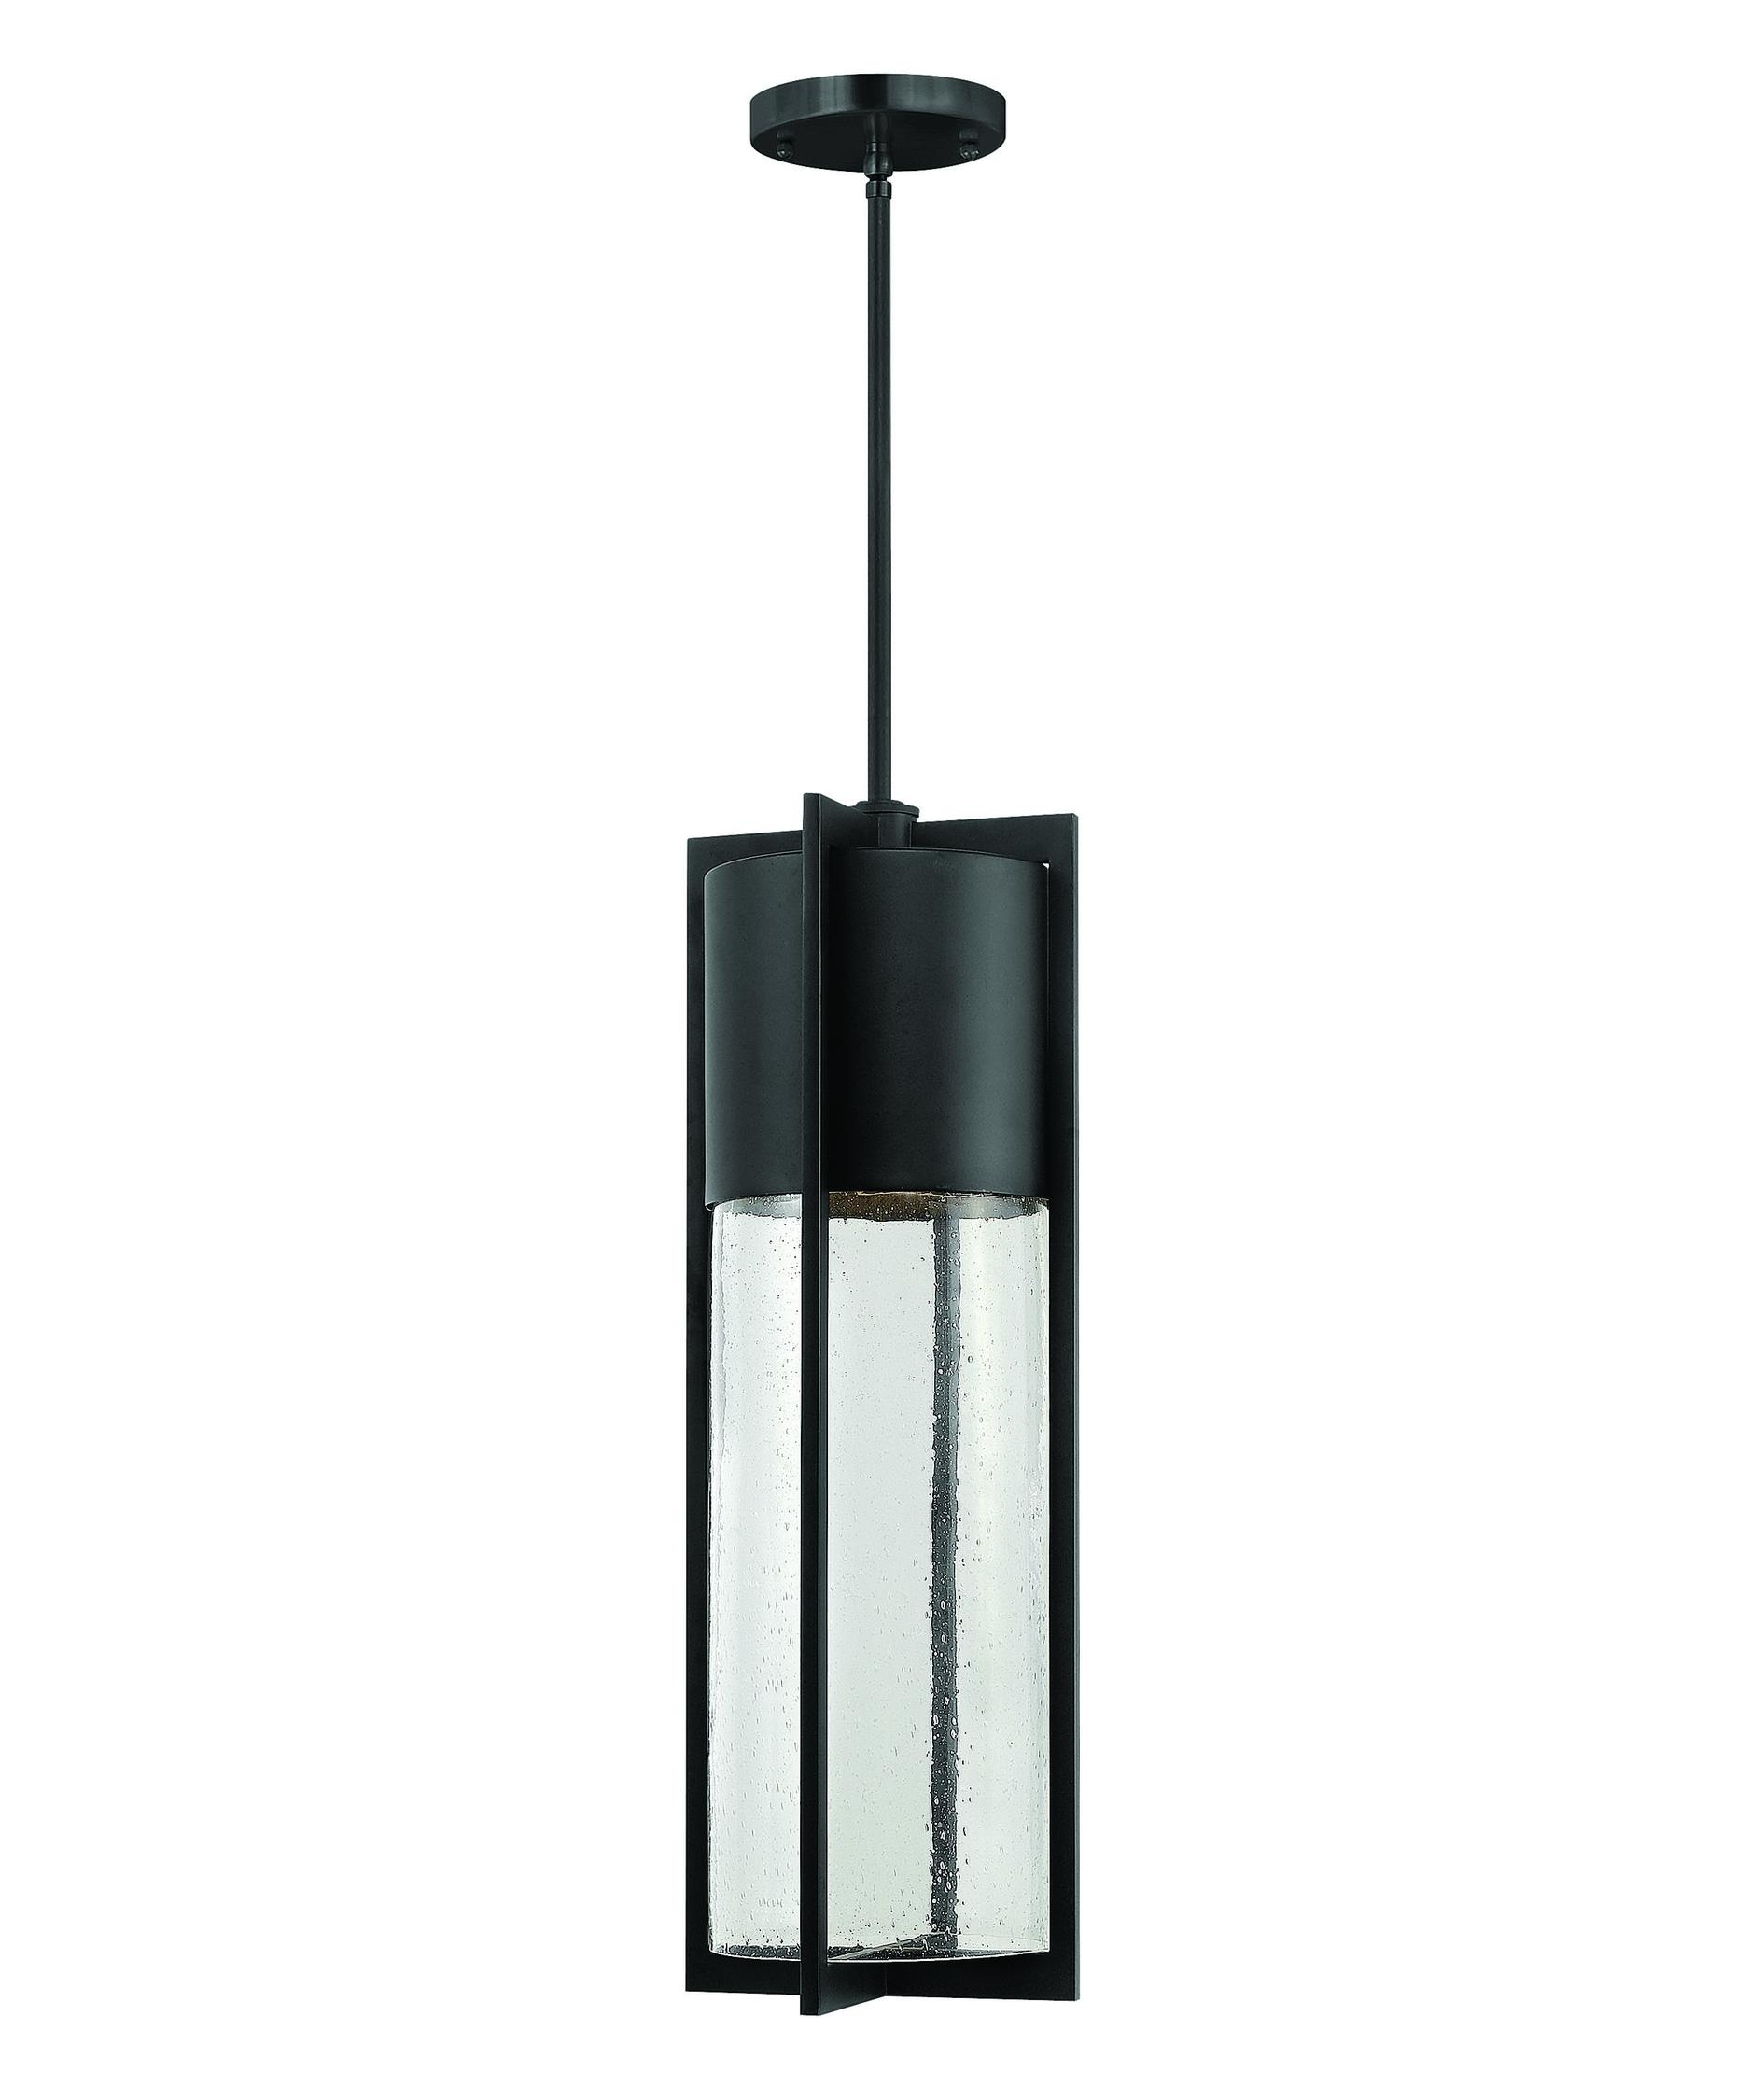 Outdoor Pendant Light Crystal Pendant Light' Brushed Nickel Mini In Contemporary Hanging Porch Hinkley Lighting (View 11 of 15)